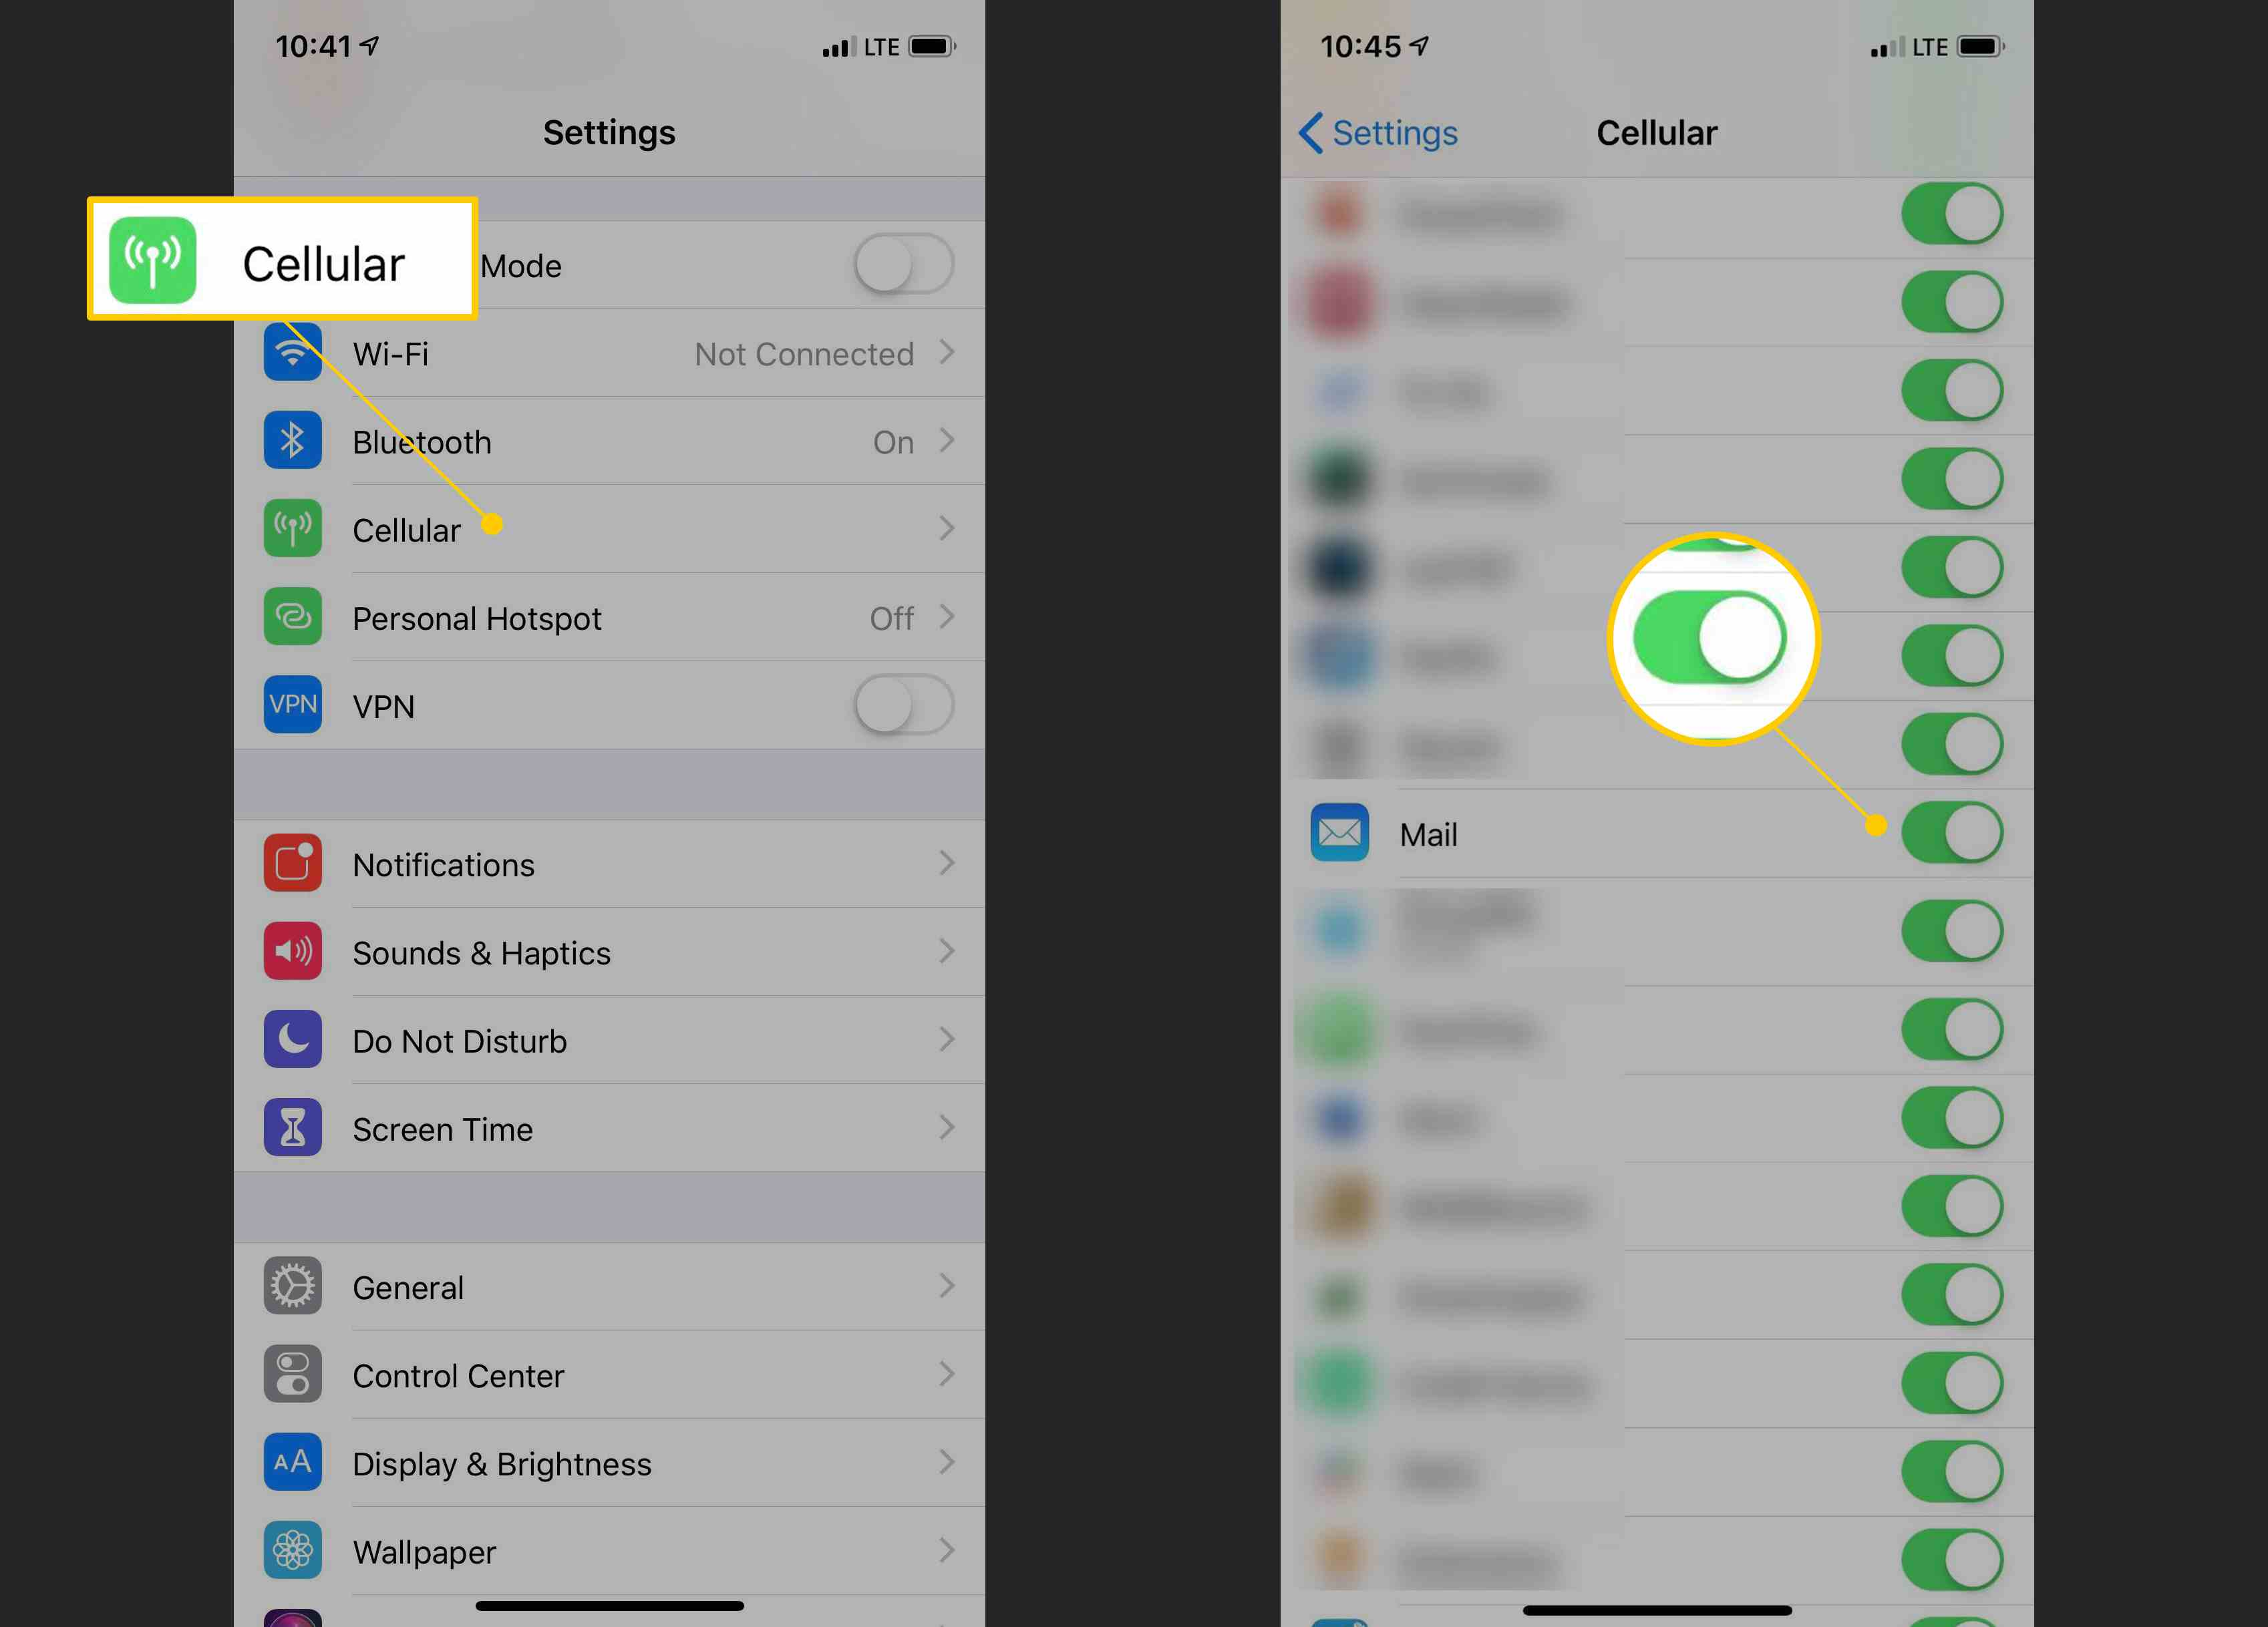 How to Stop iOS Mail from Using Cellular Data